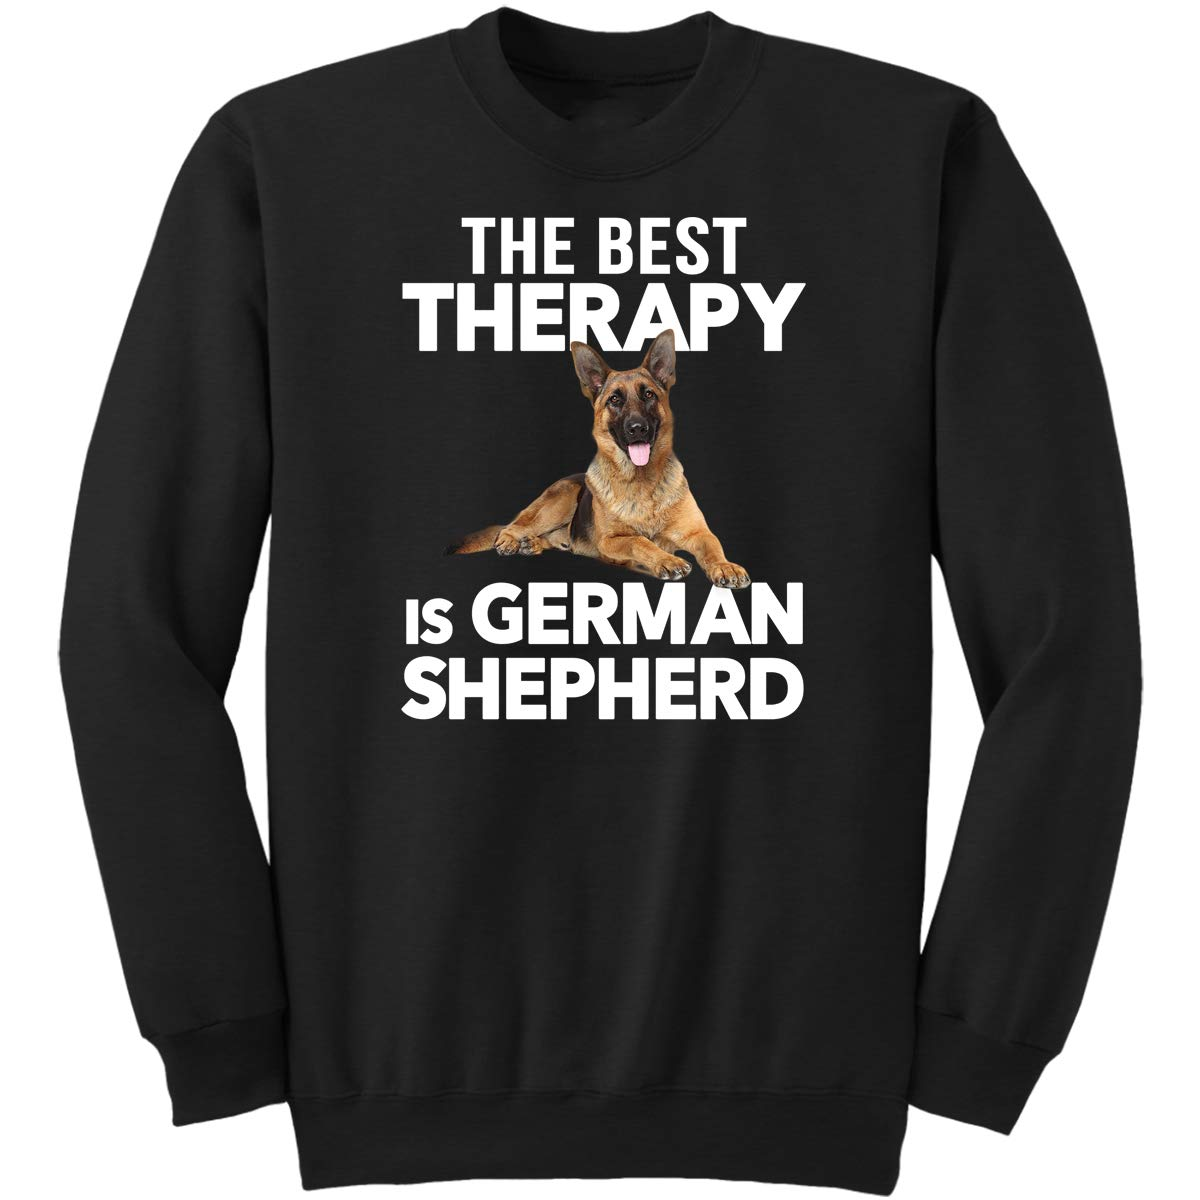 Funny Gifts for Pet Lover Sweatshirt The Best Therapy is German Shepherd Dog